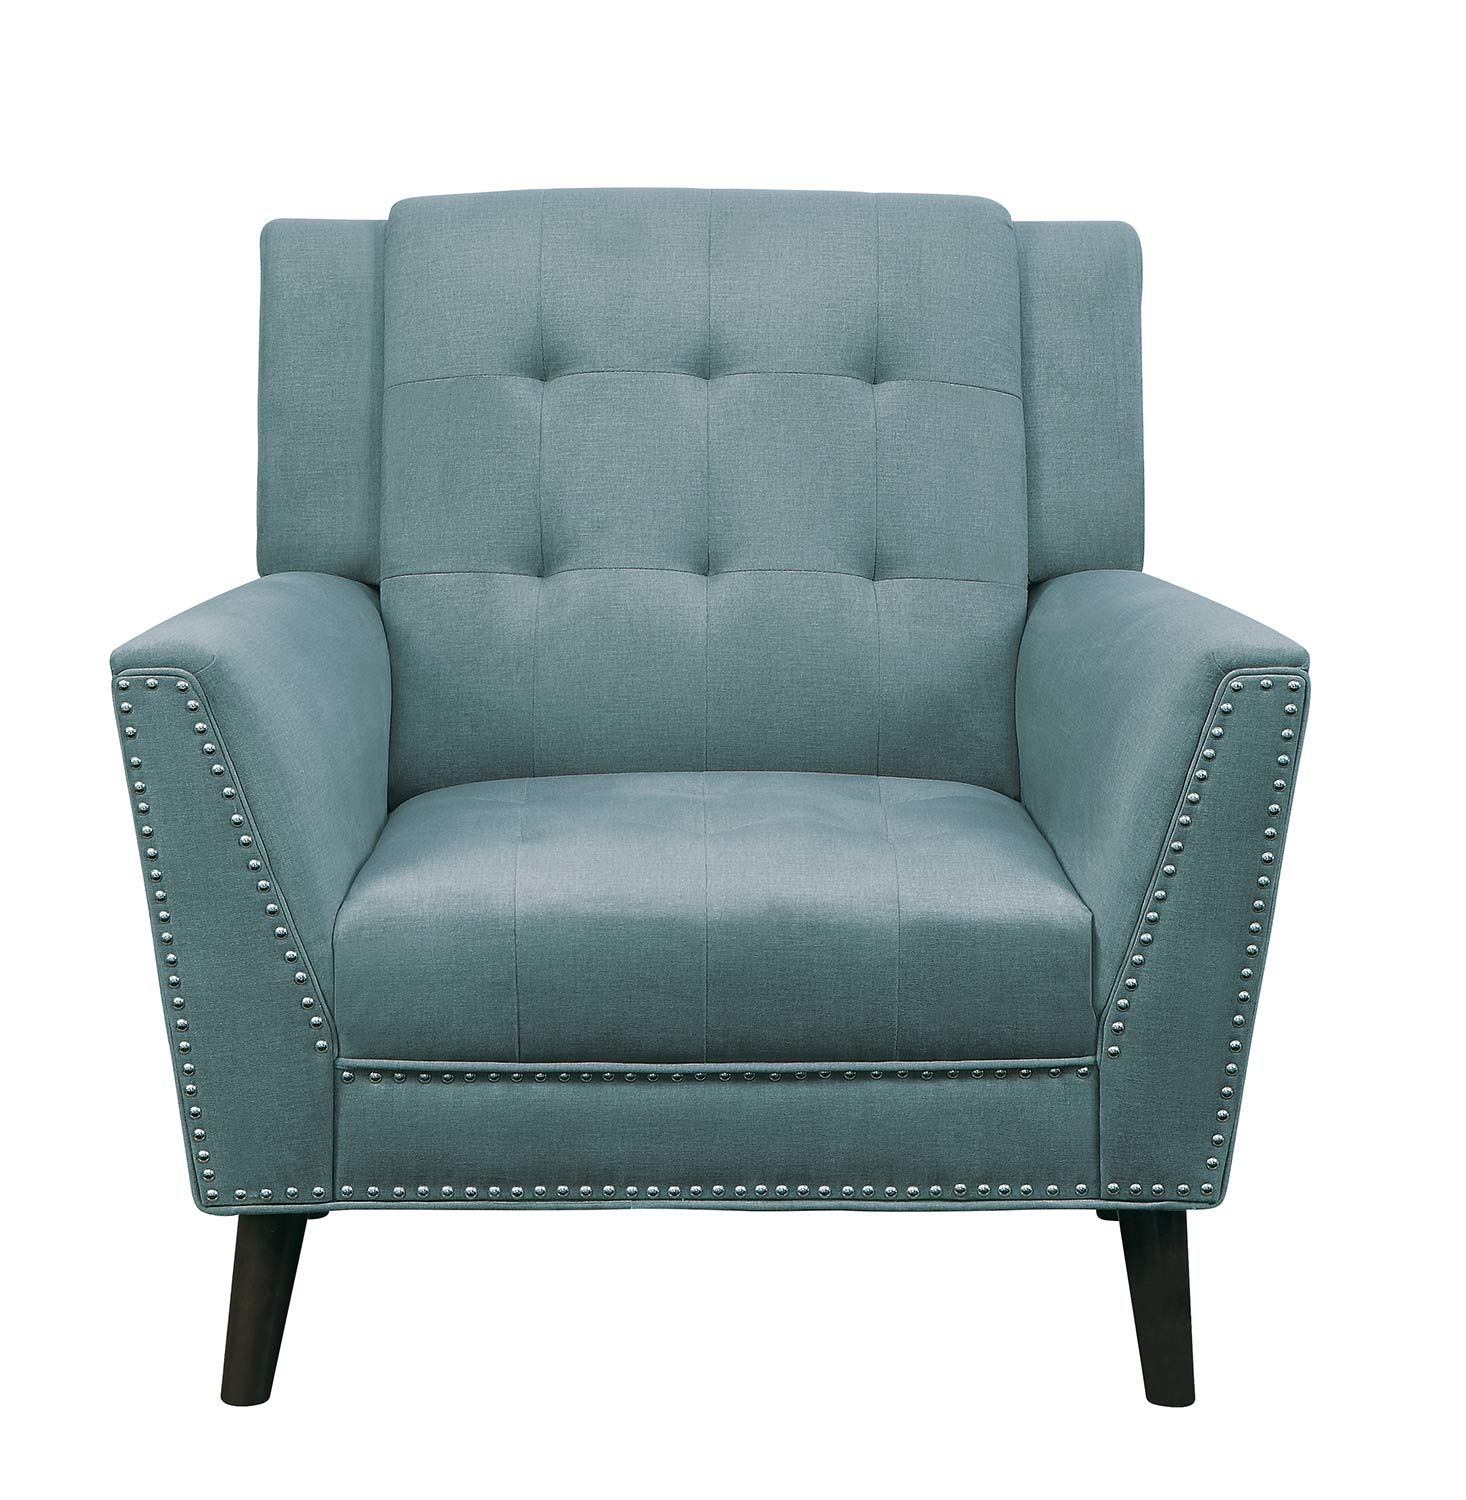 Homelegance Broadview Chair - Fog gray